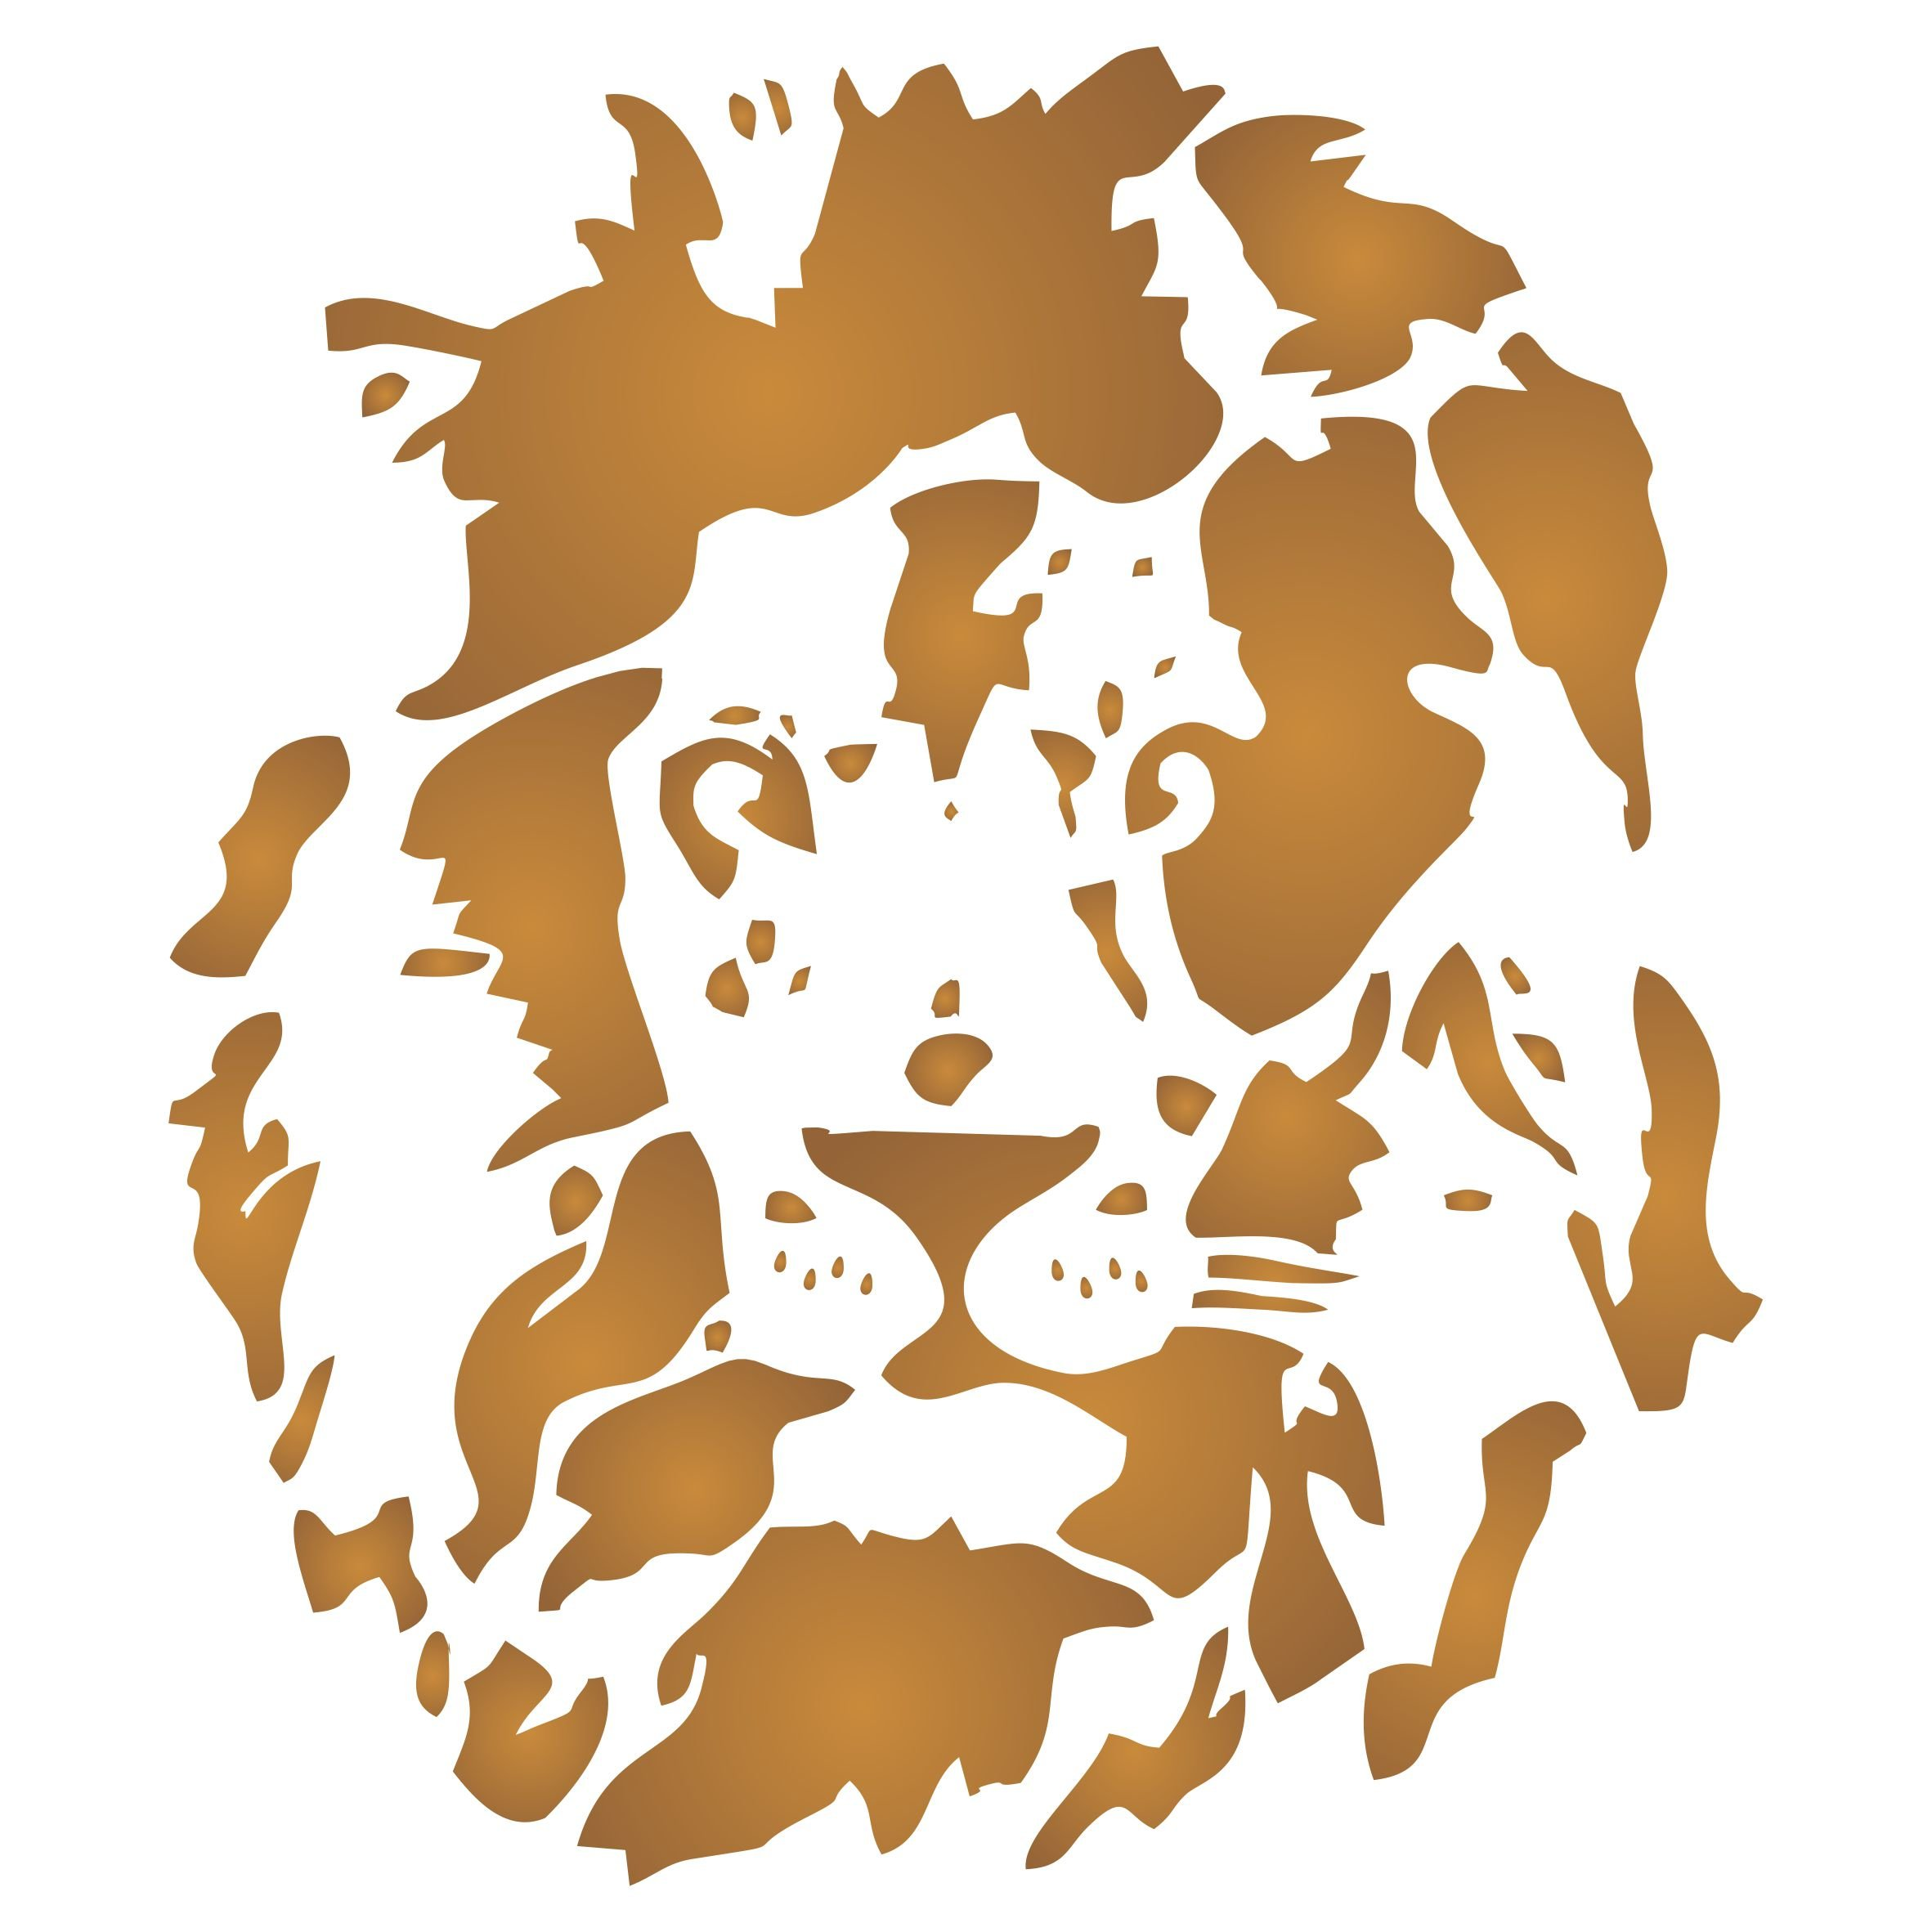 Lion Head Stencil - (size 14''w x 16''h) Reusable Wall Stencils for Painting - Best Quality Decor Ideas - Use on Walls, Floors, Fabrics, Glass, Wood, and More... by Stencils for Walls